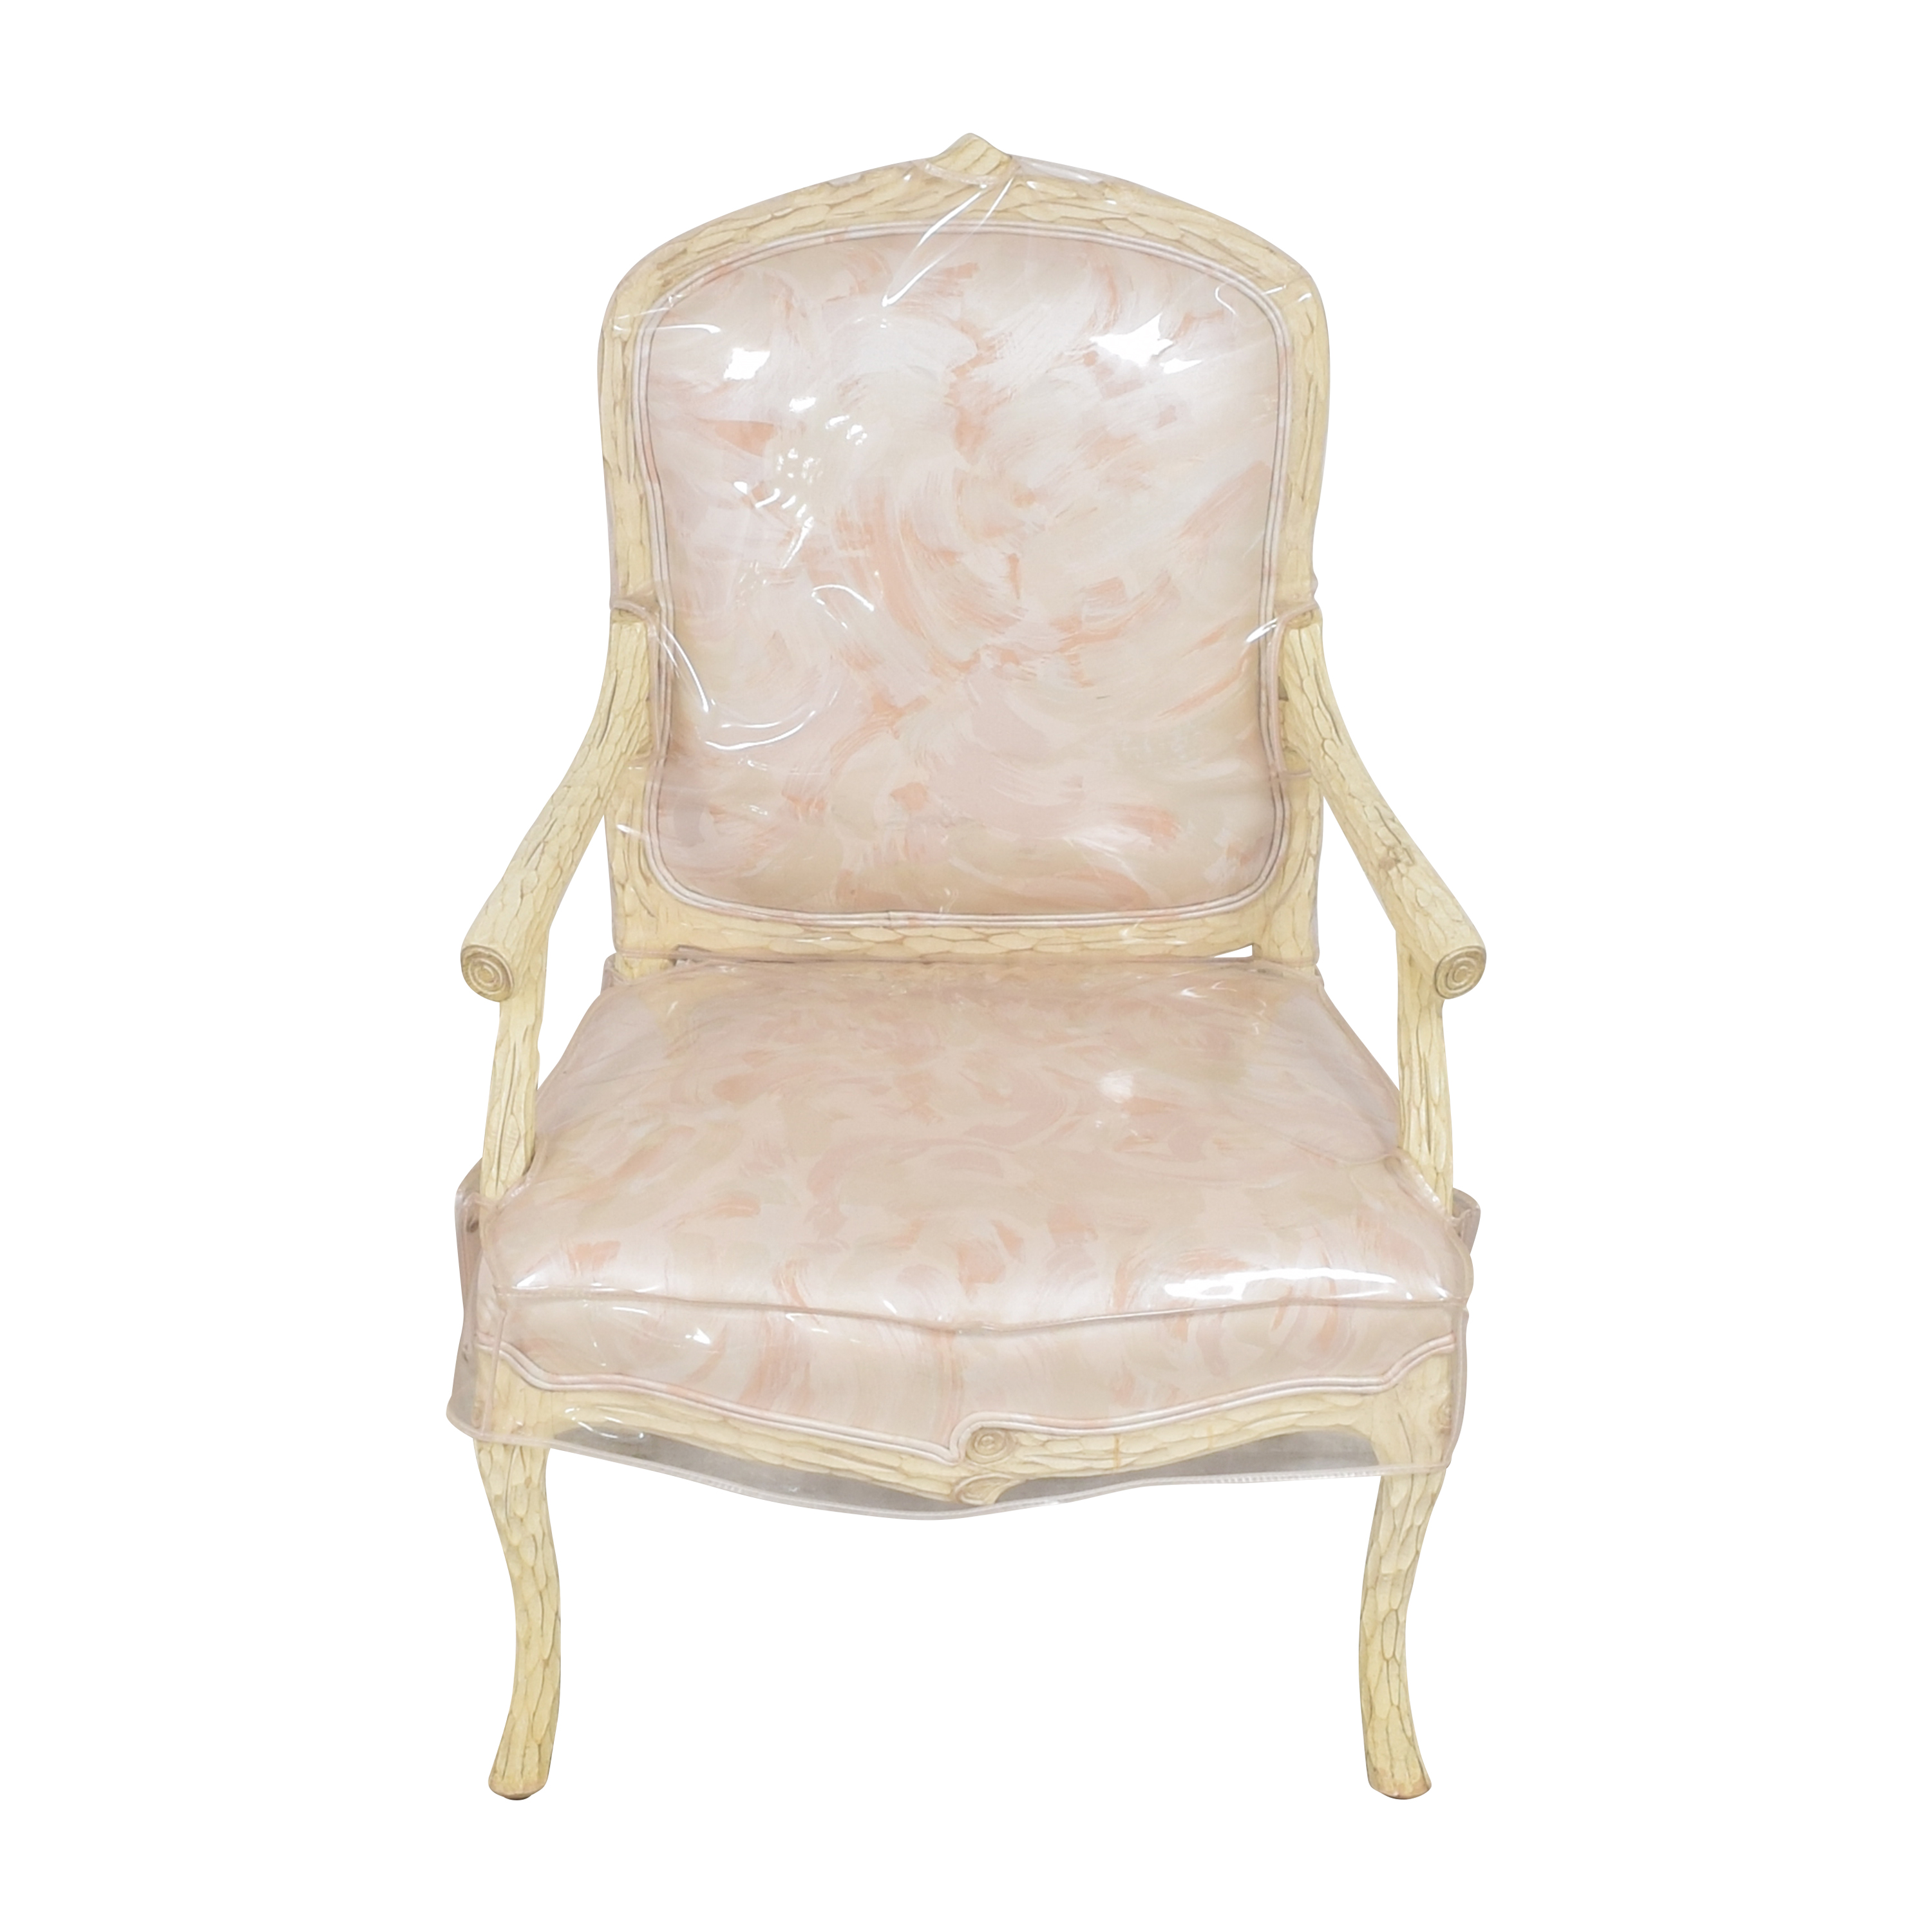 French Provincial-Style Arm Chair / Accent Chairs